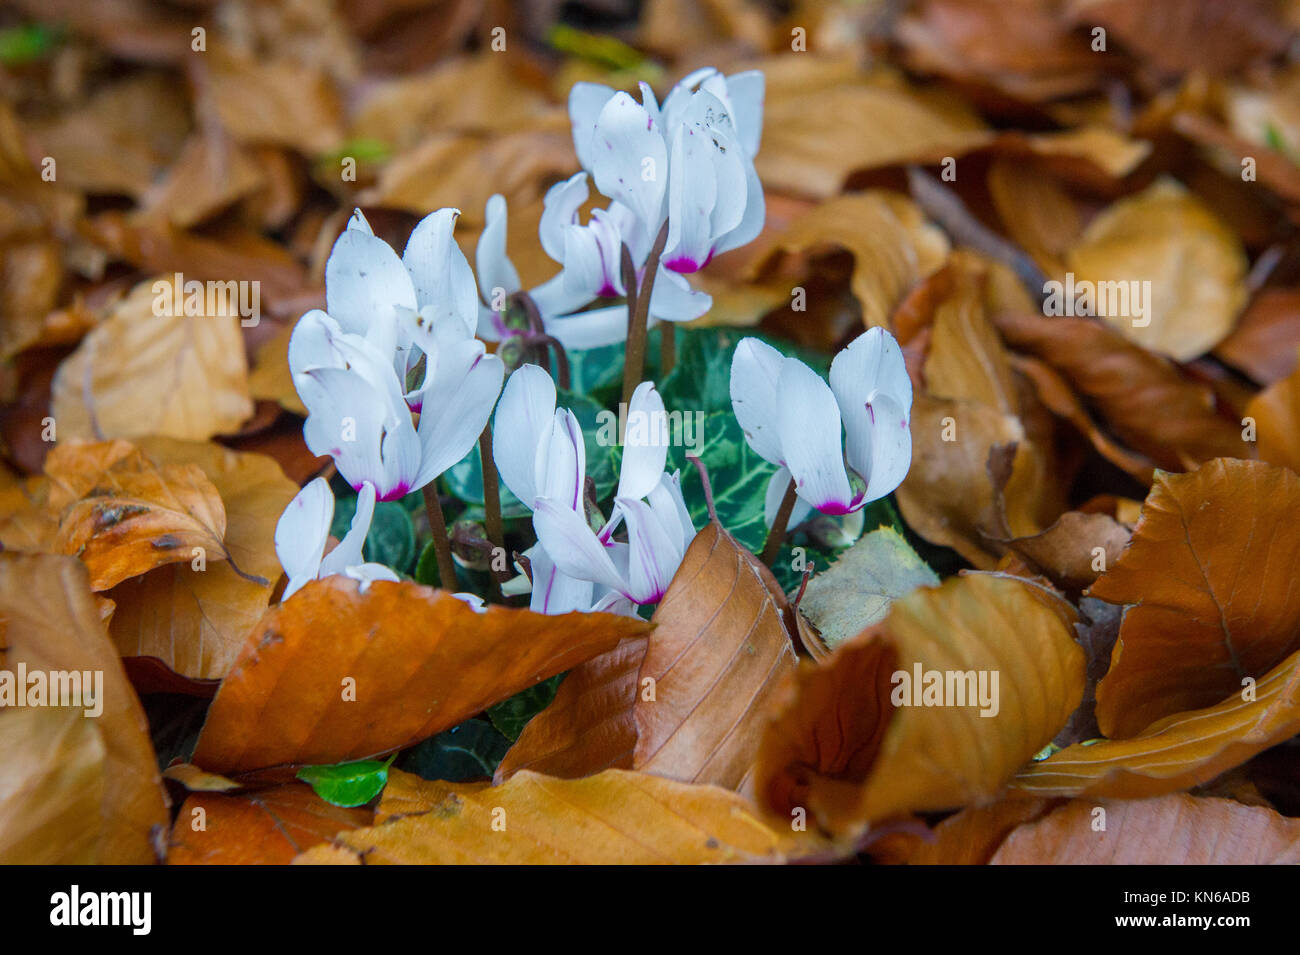 A Crocus flower amongst fallen autumn leaves - Stock Image